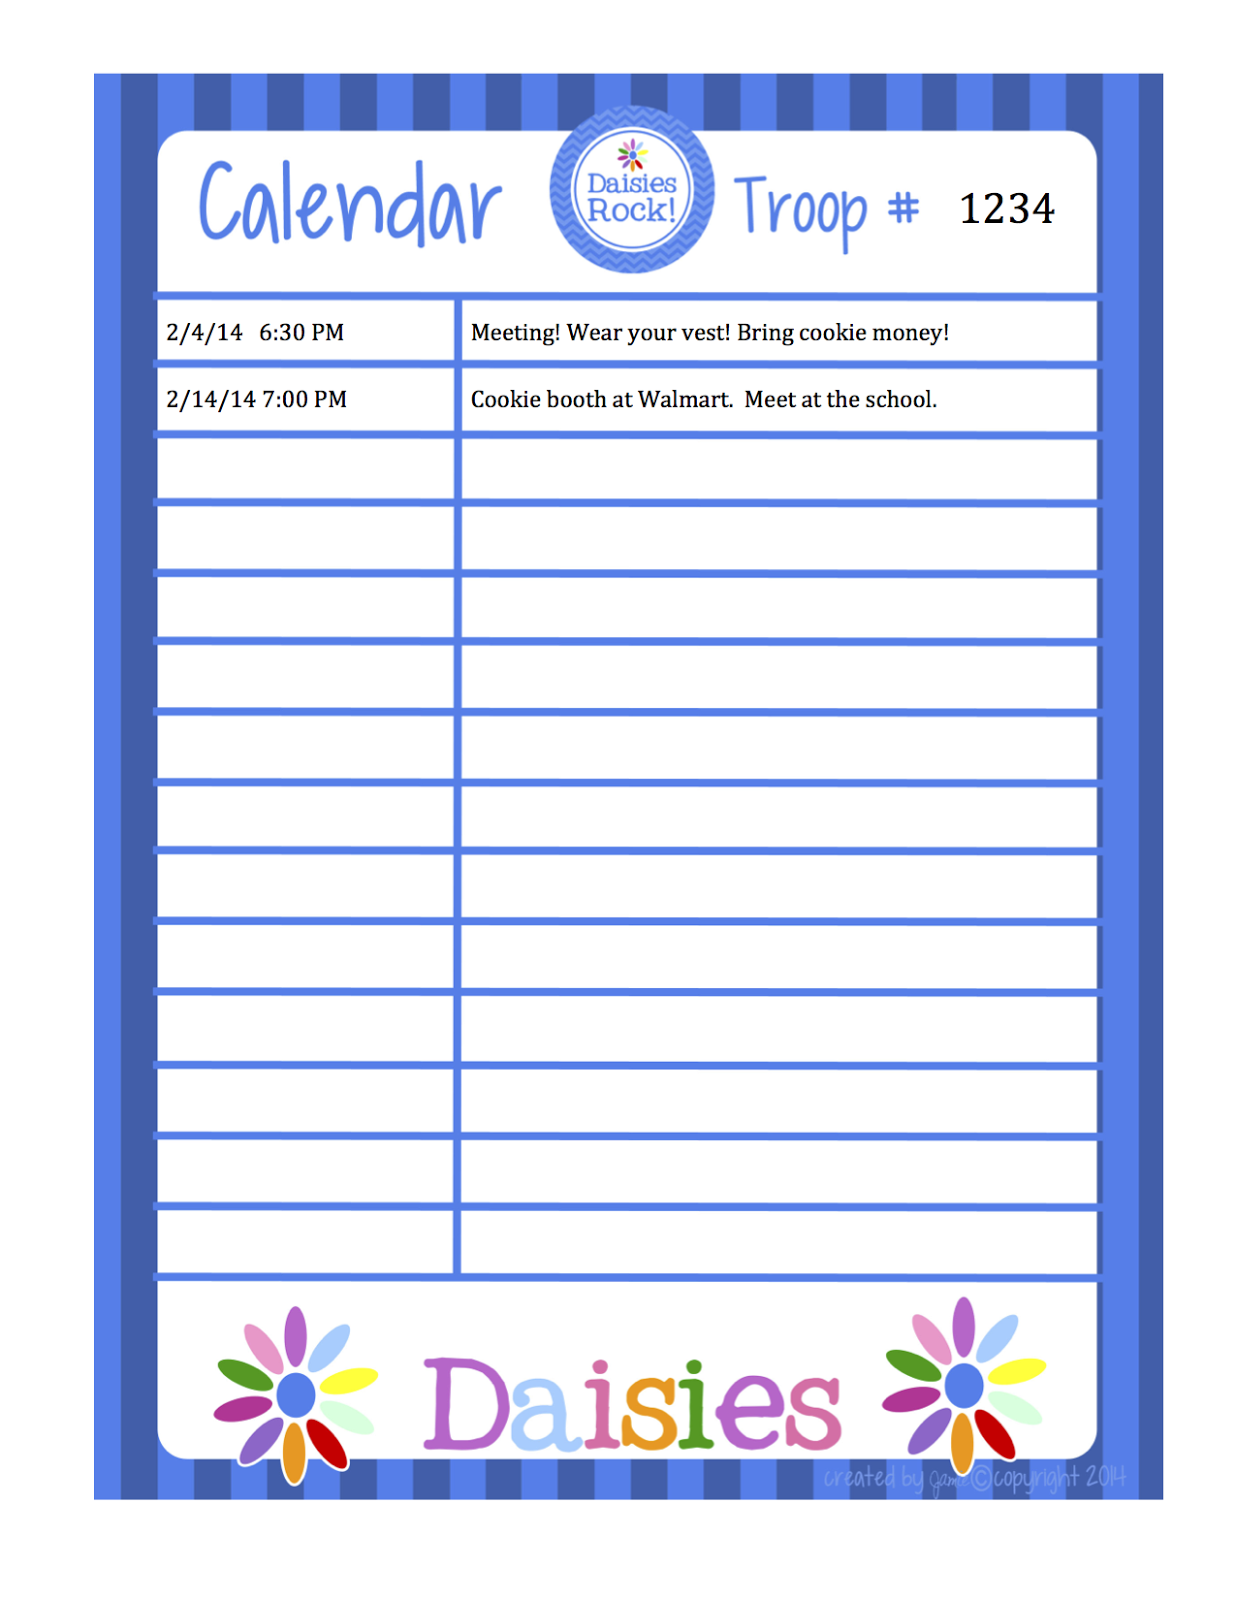 Fashionable moms girl scouts daisies calendar word for Boy scout calendar template